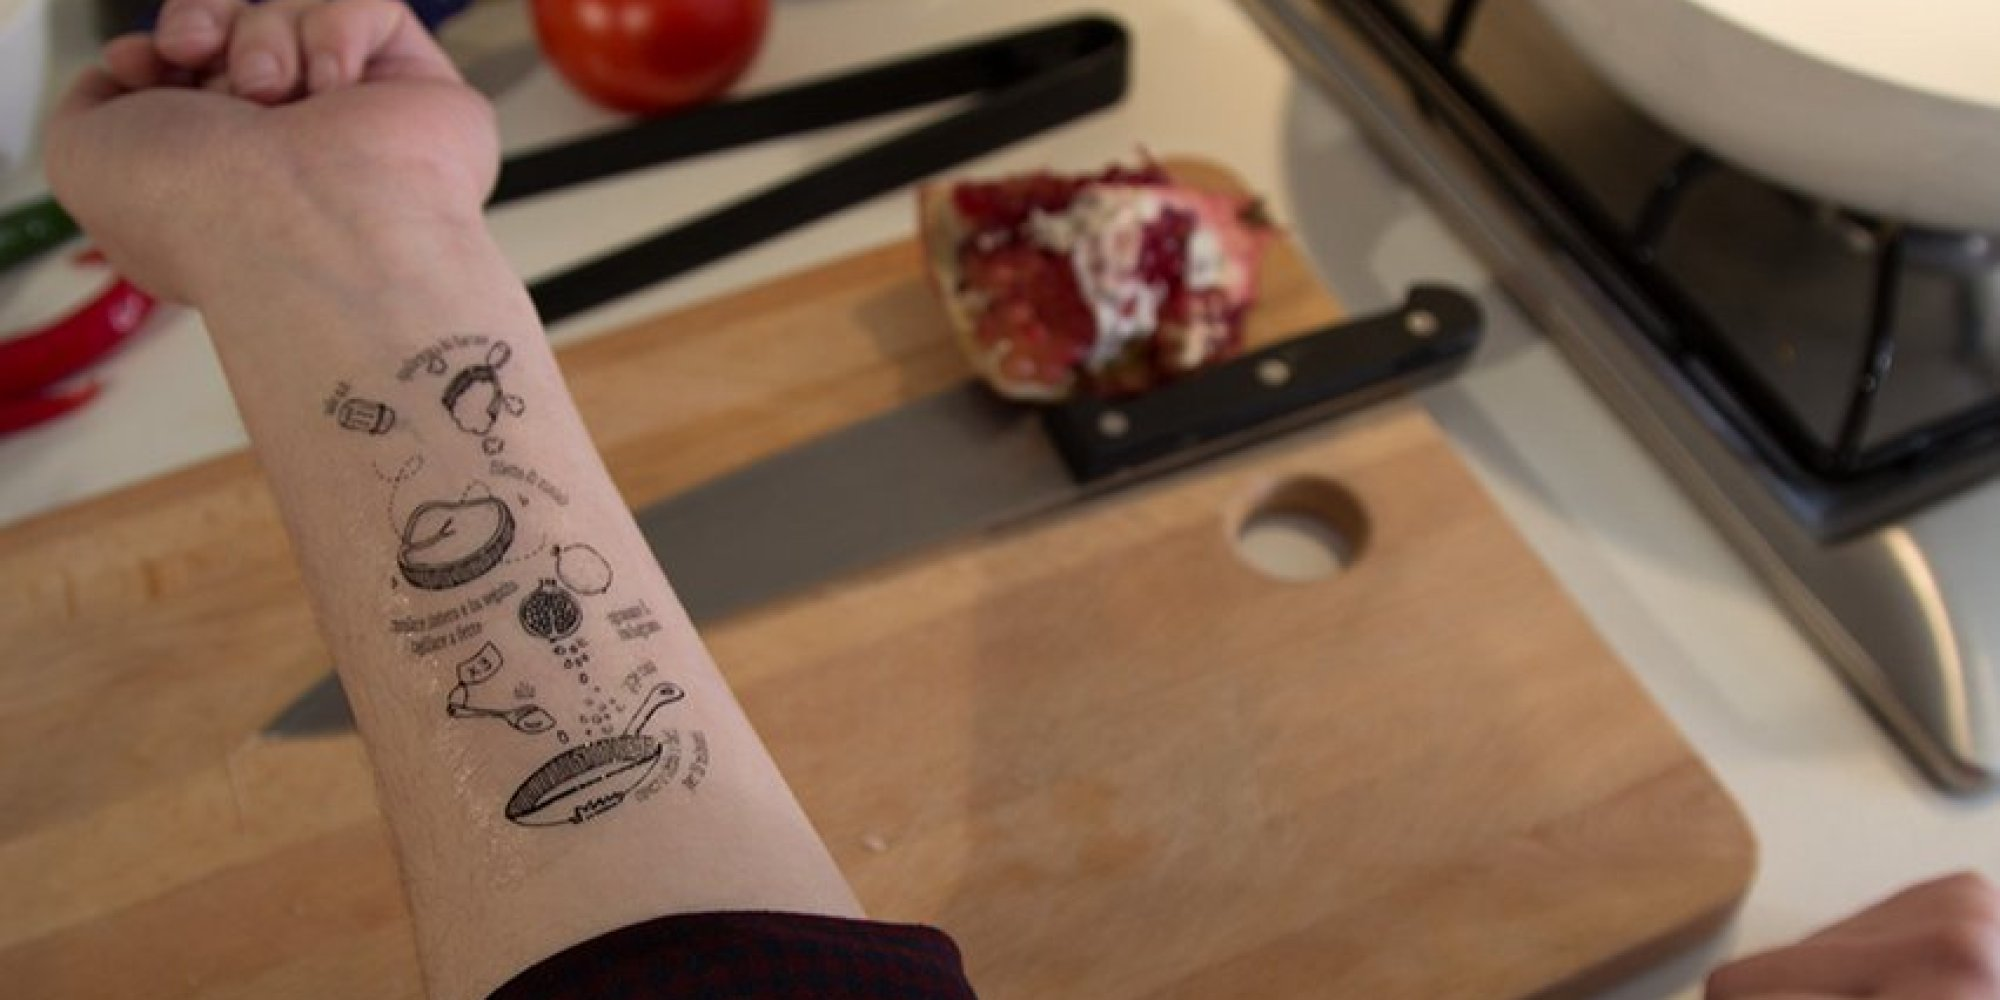 I Tradizionali Takes Culinary Tattoos To A Whole New Extreme | HuffPost